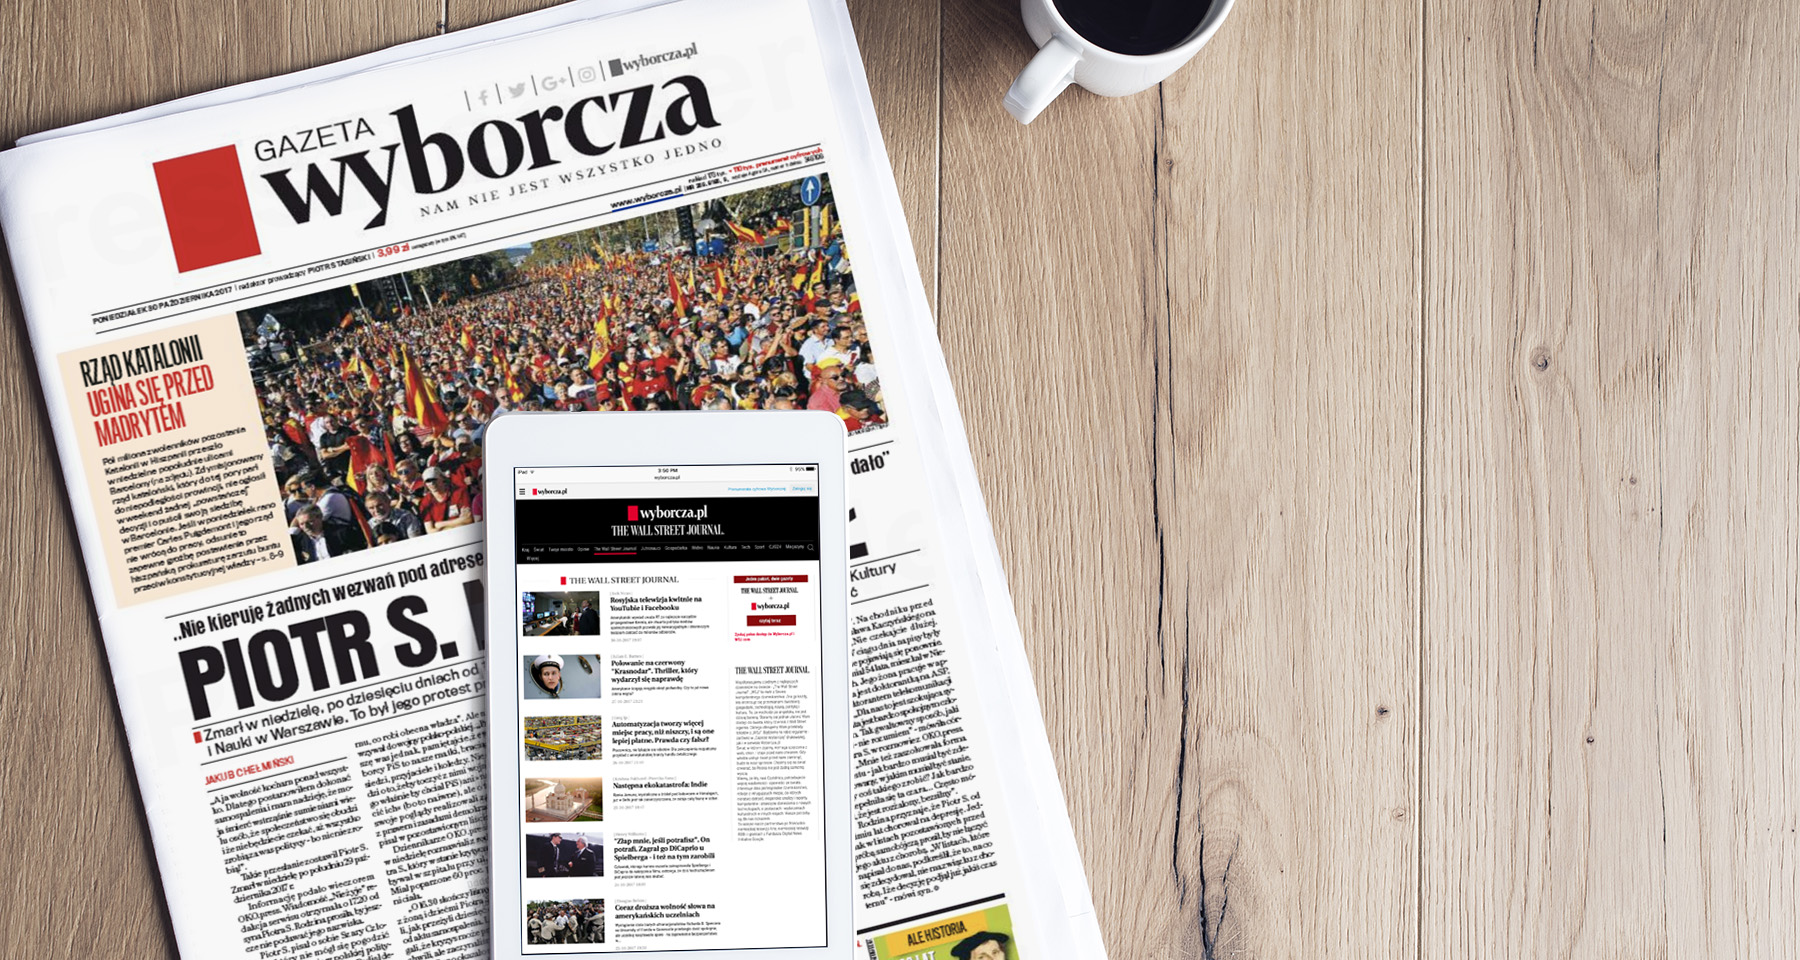 Poland's media navigates through populist waters for business success